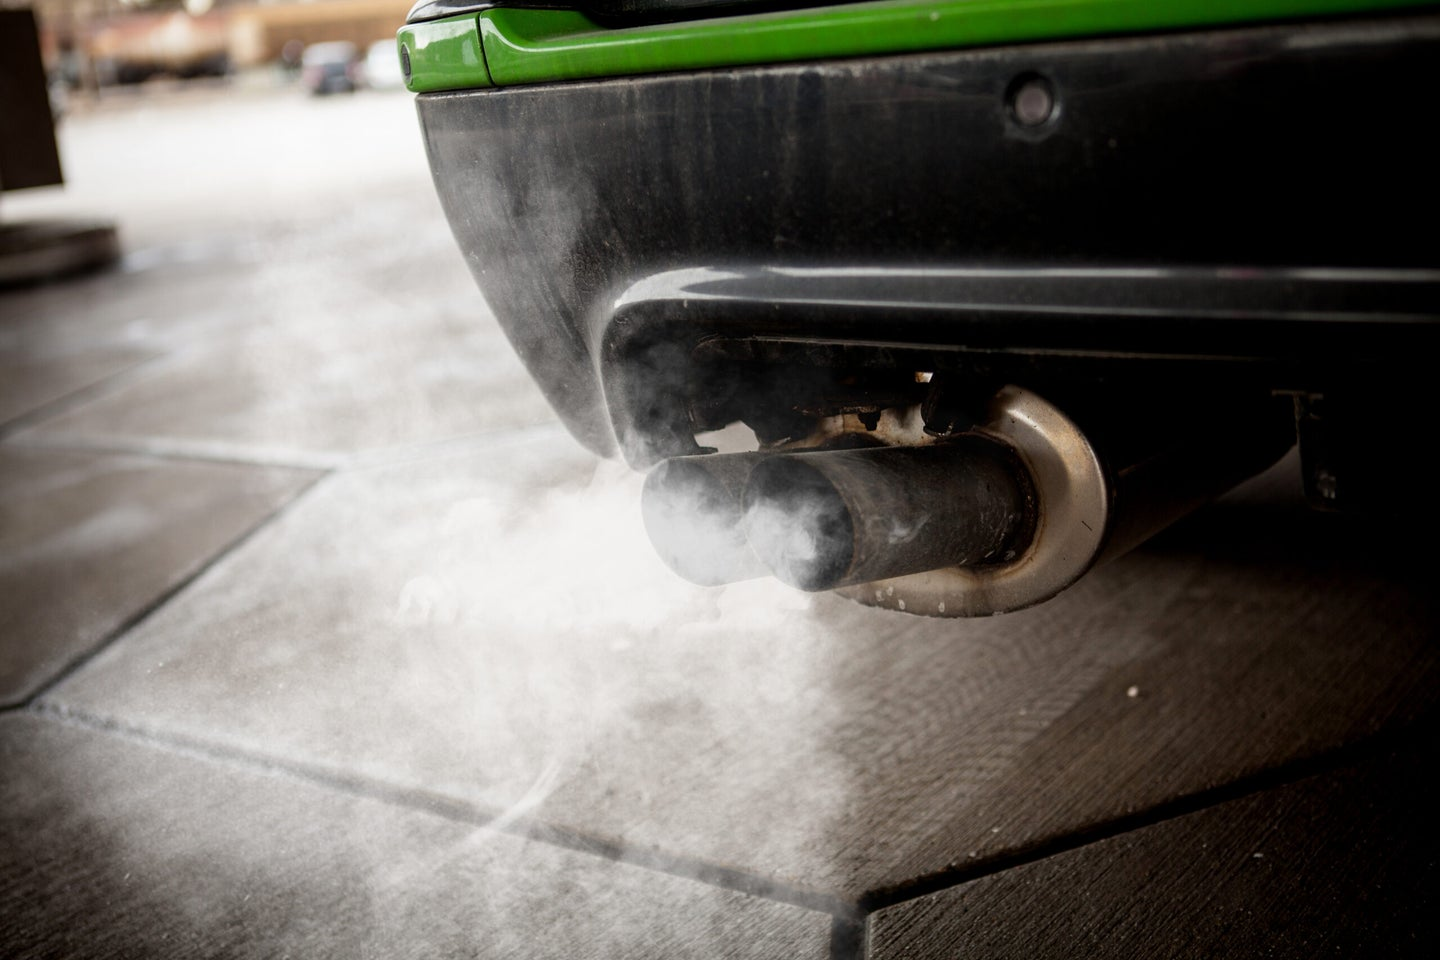 Filtering diesel exhaust could make it worse